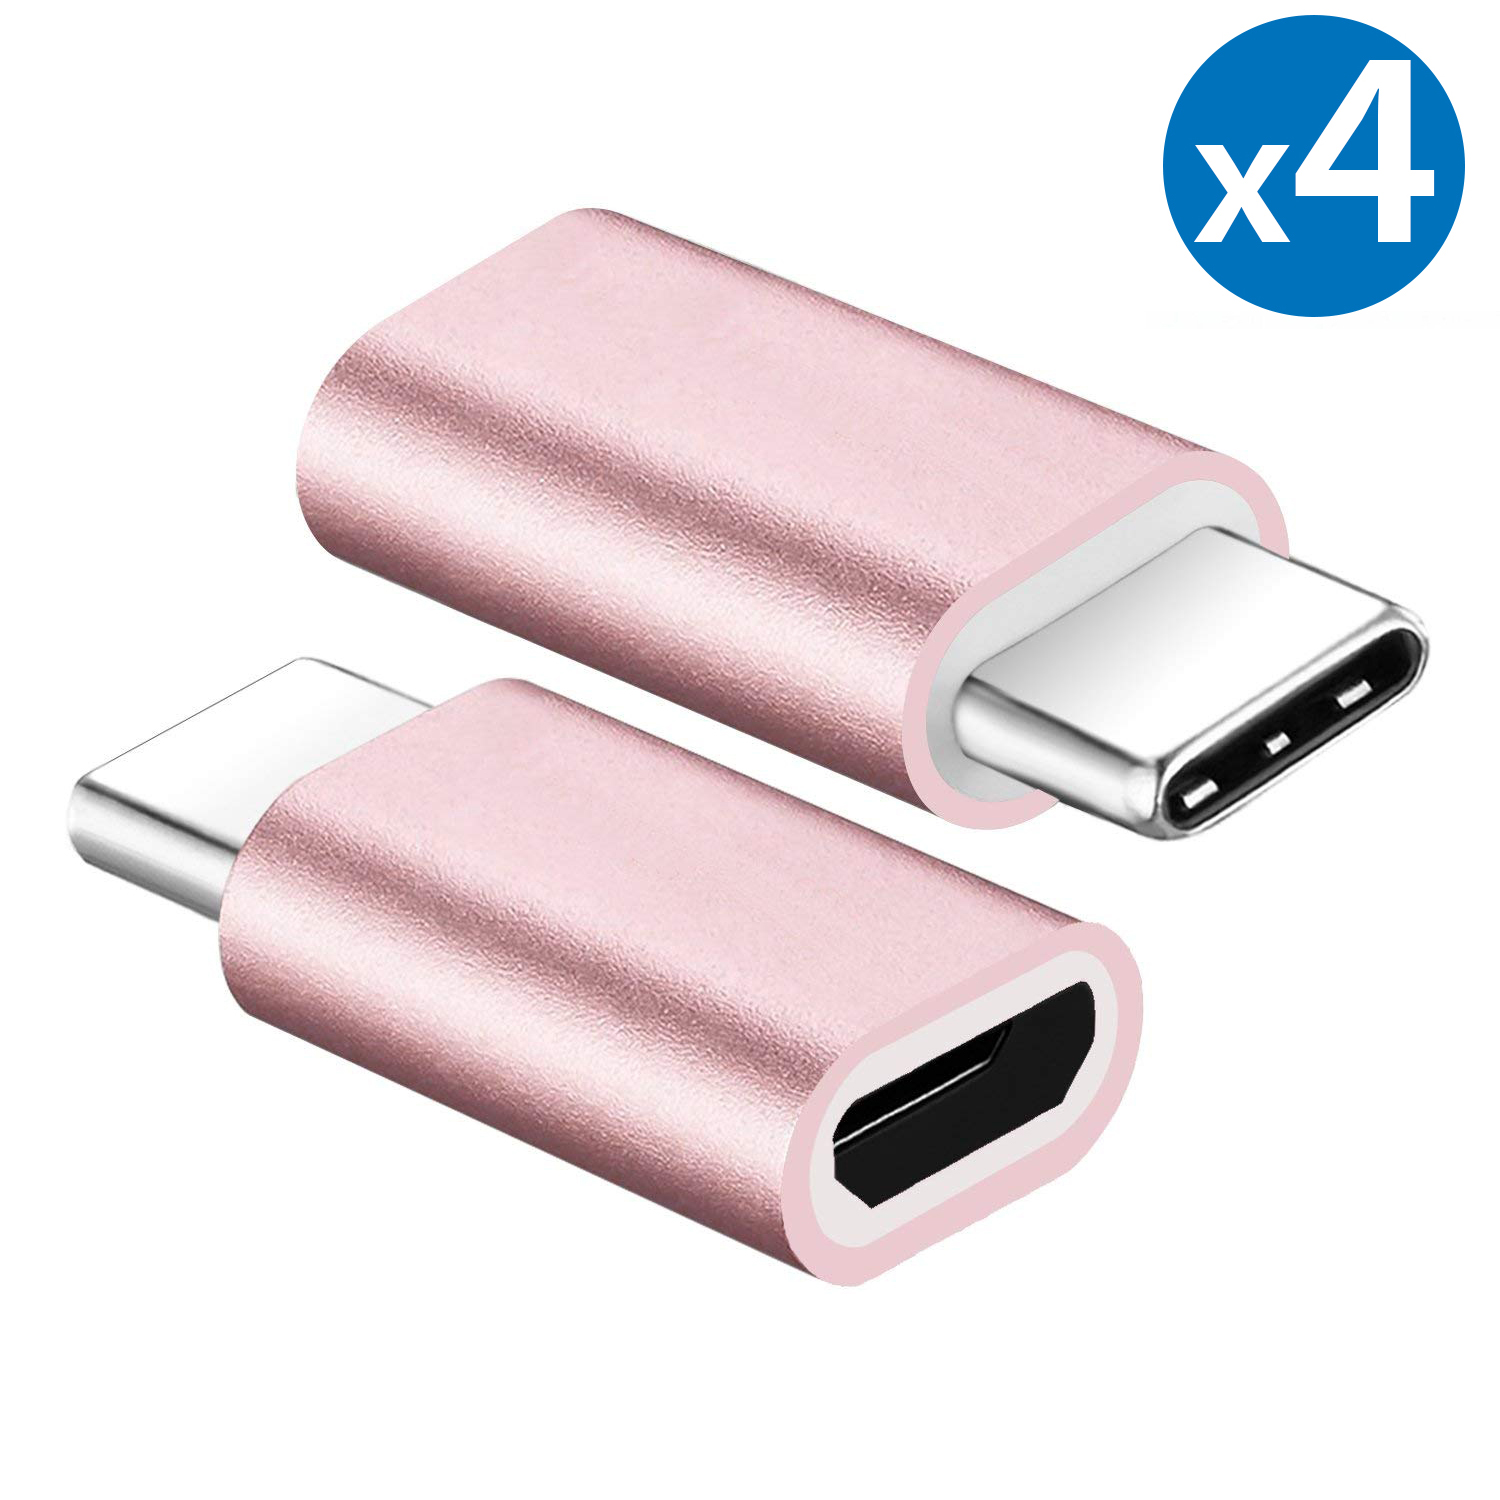 4x FREEDOMTECH Type C Adapter, Micro USB to USB C Adapter, Data Sync and Charging, Universal for Mac, ChromeBook Pixel, Nexus 5X, Nexus 6P, Nokia N1, Samsung Galaxy S9/S8, Note 8/9 All Type C Devices